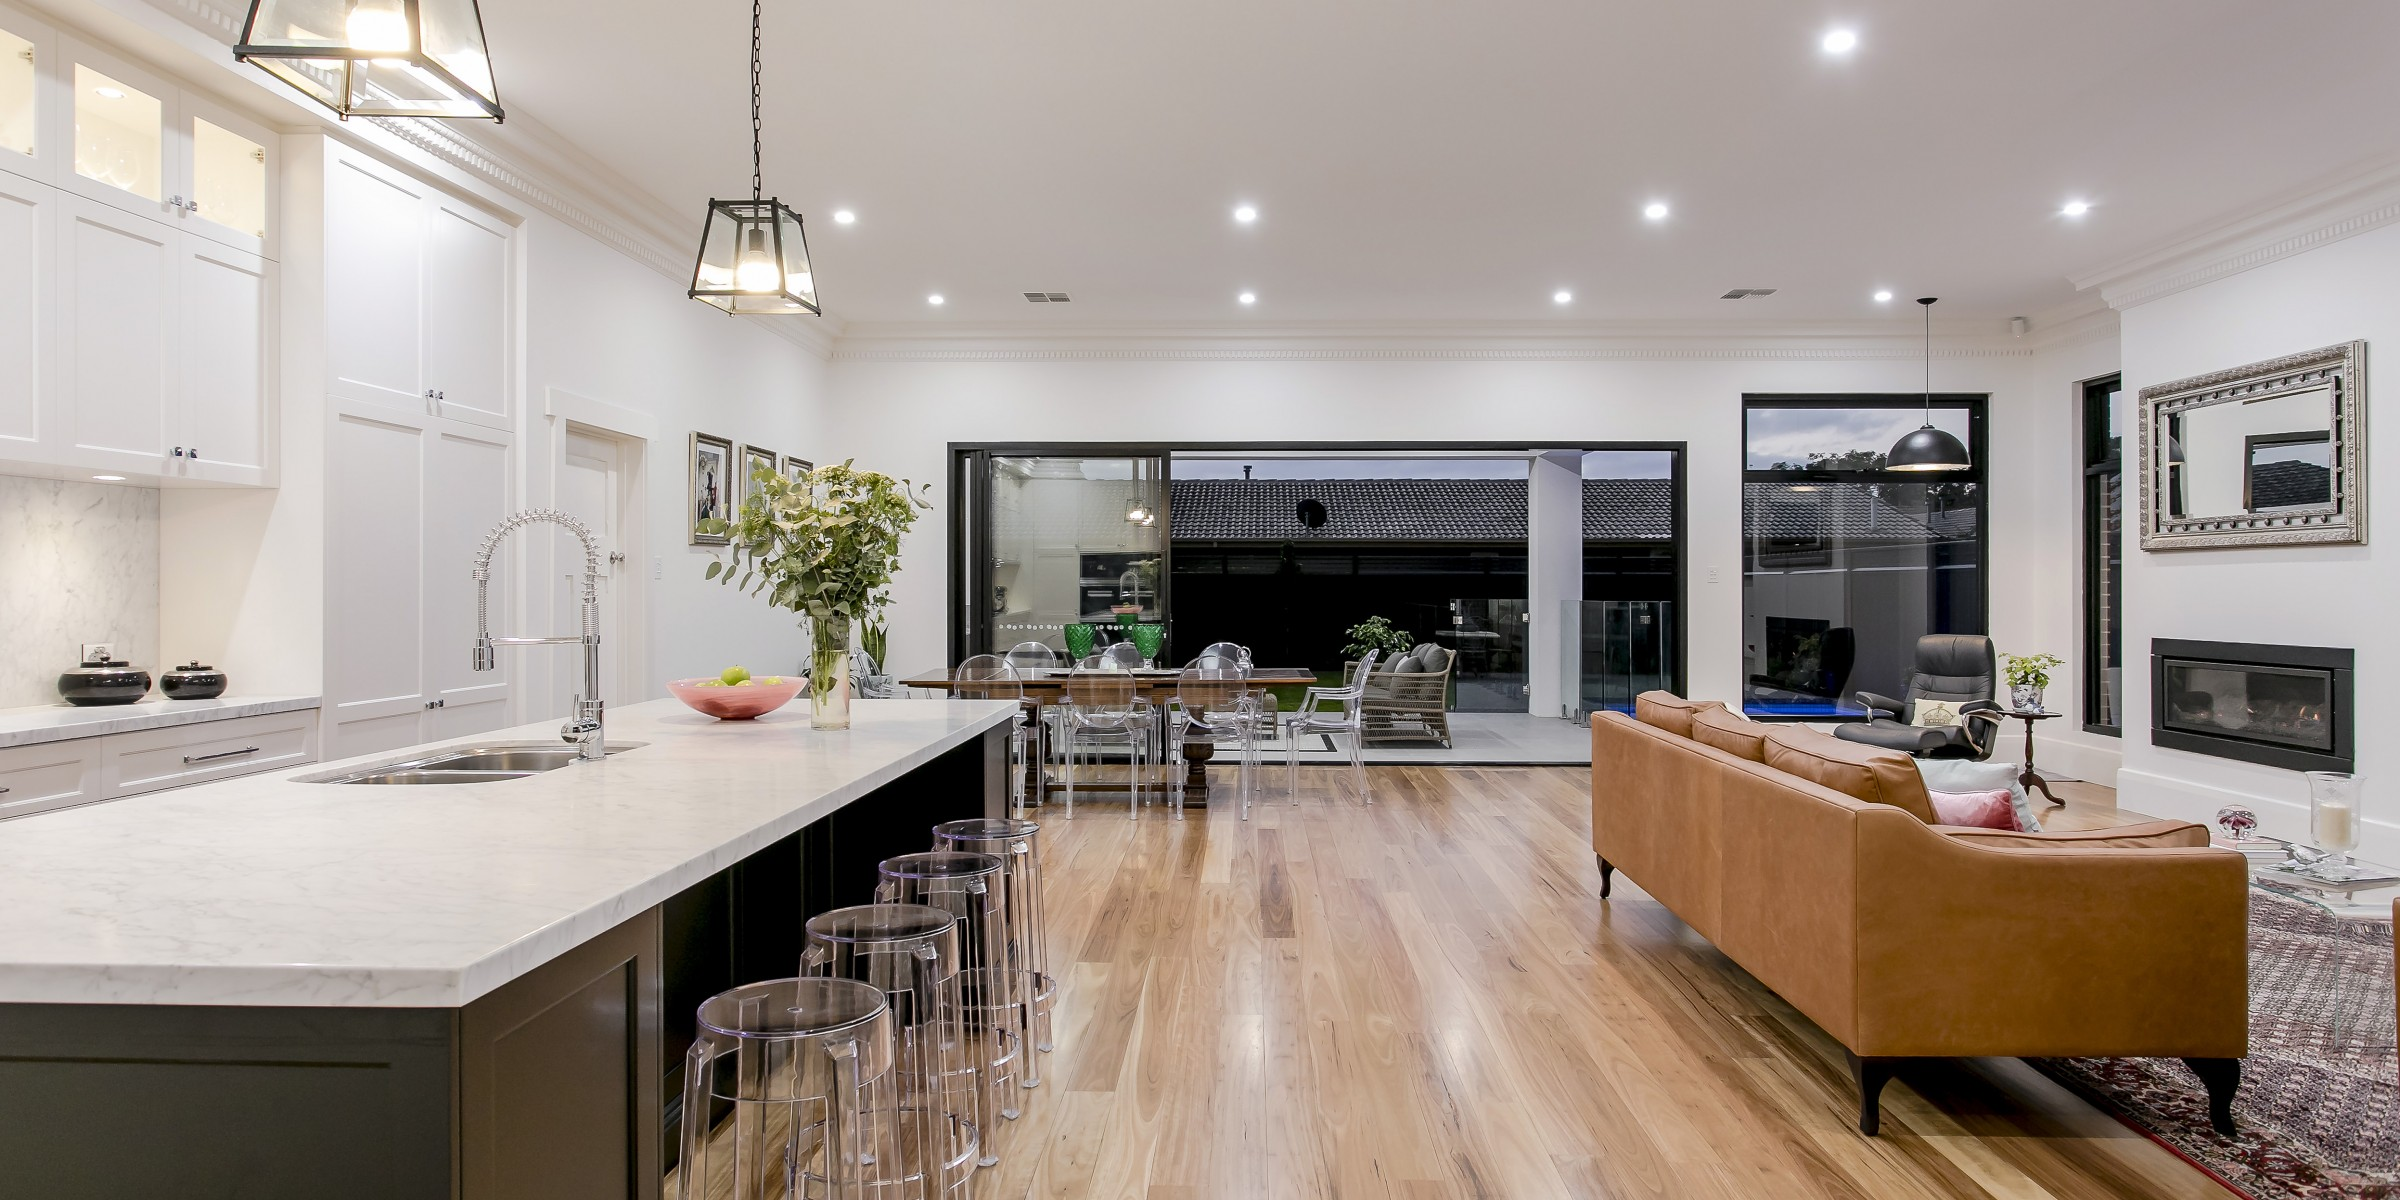 Interior architecture of new extension to bungalow, Wilcox Street, Prospect